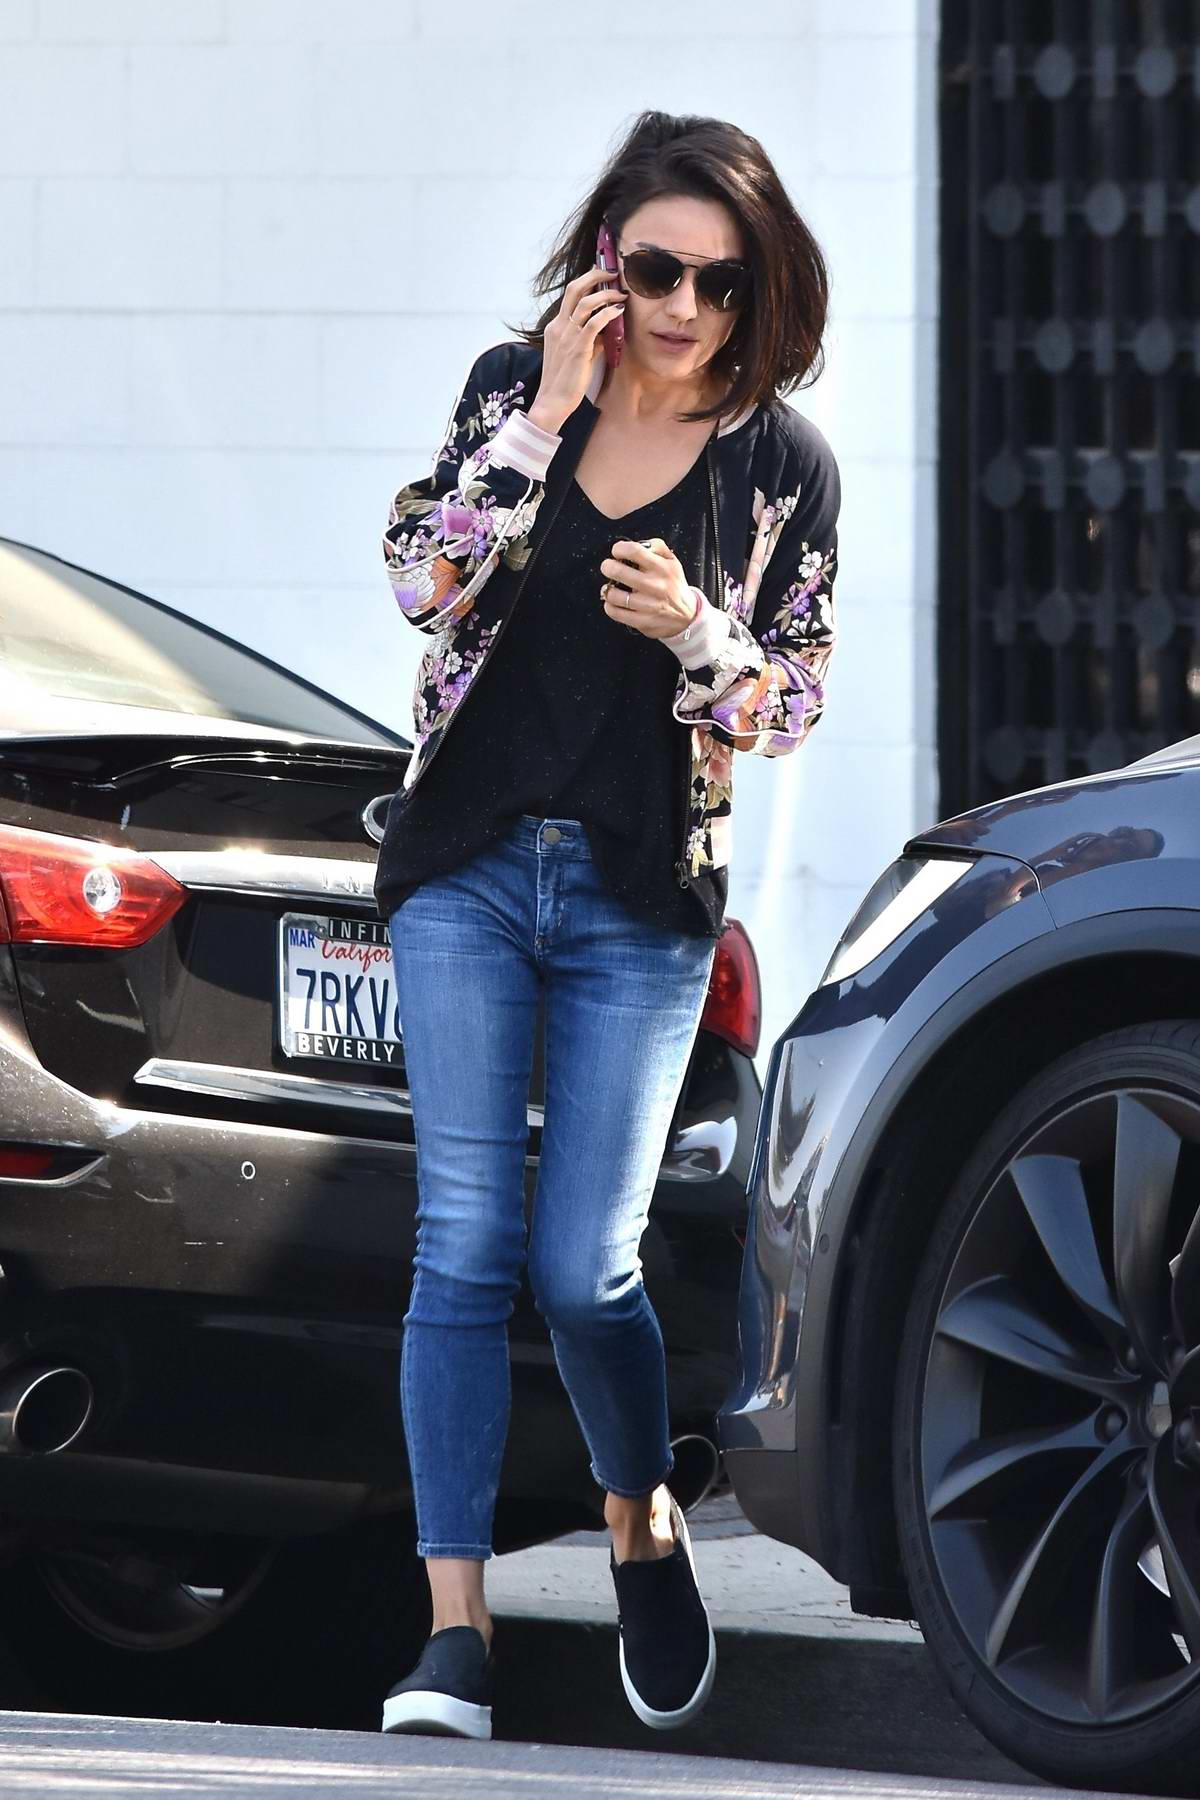 Mila Kunis busy on her phone while leaving a hair salon in Beverly Hills, Los Angeles